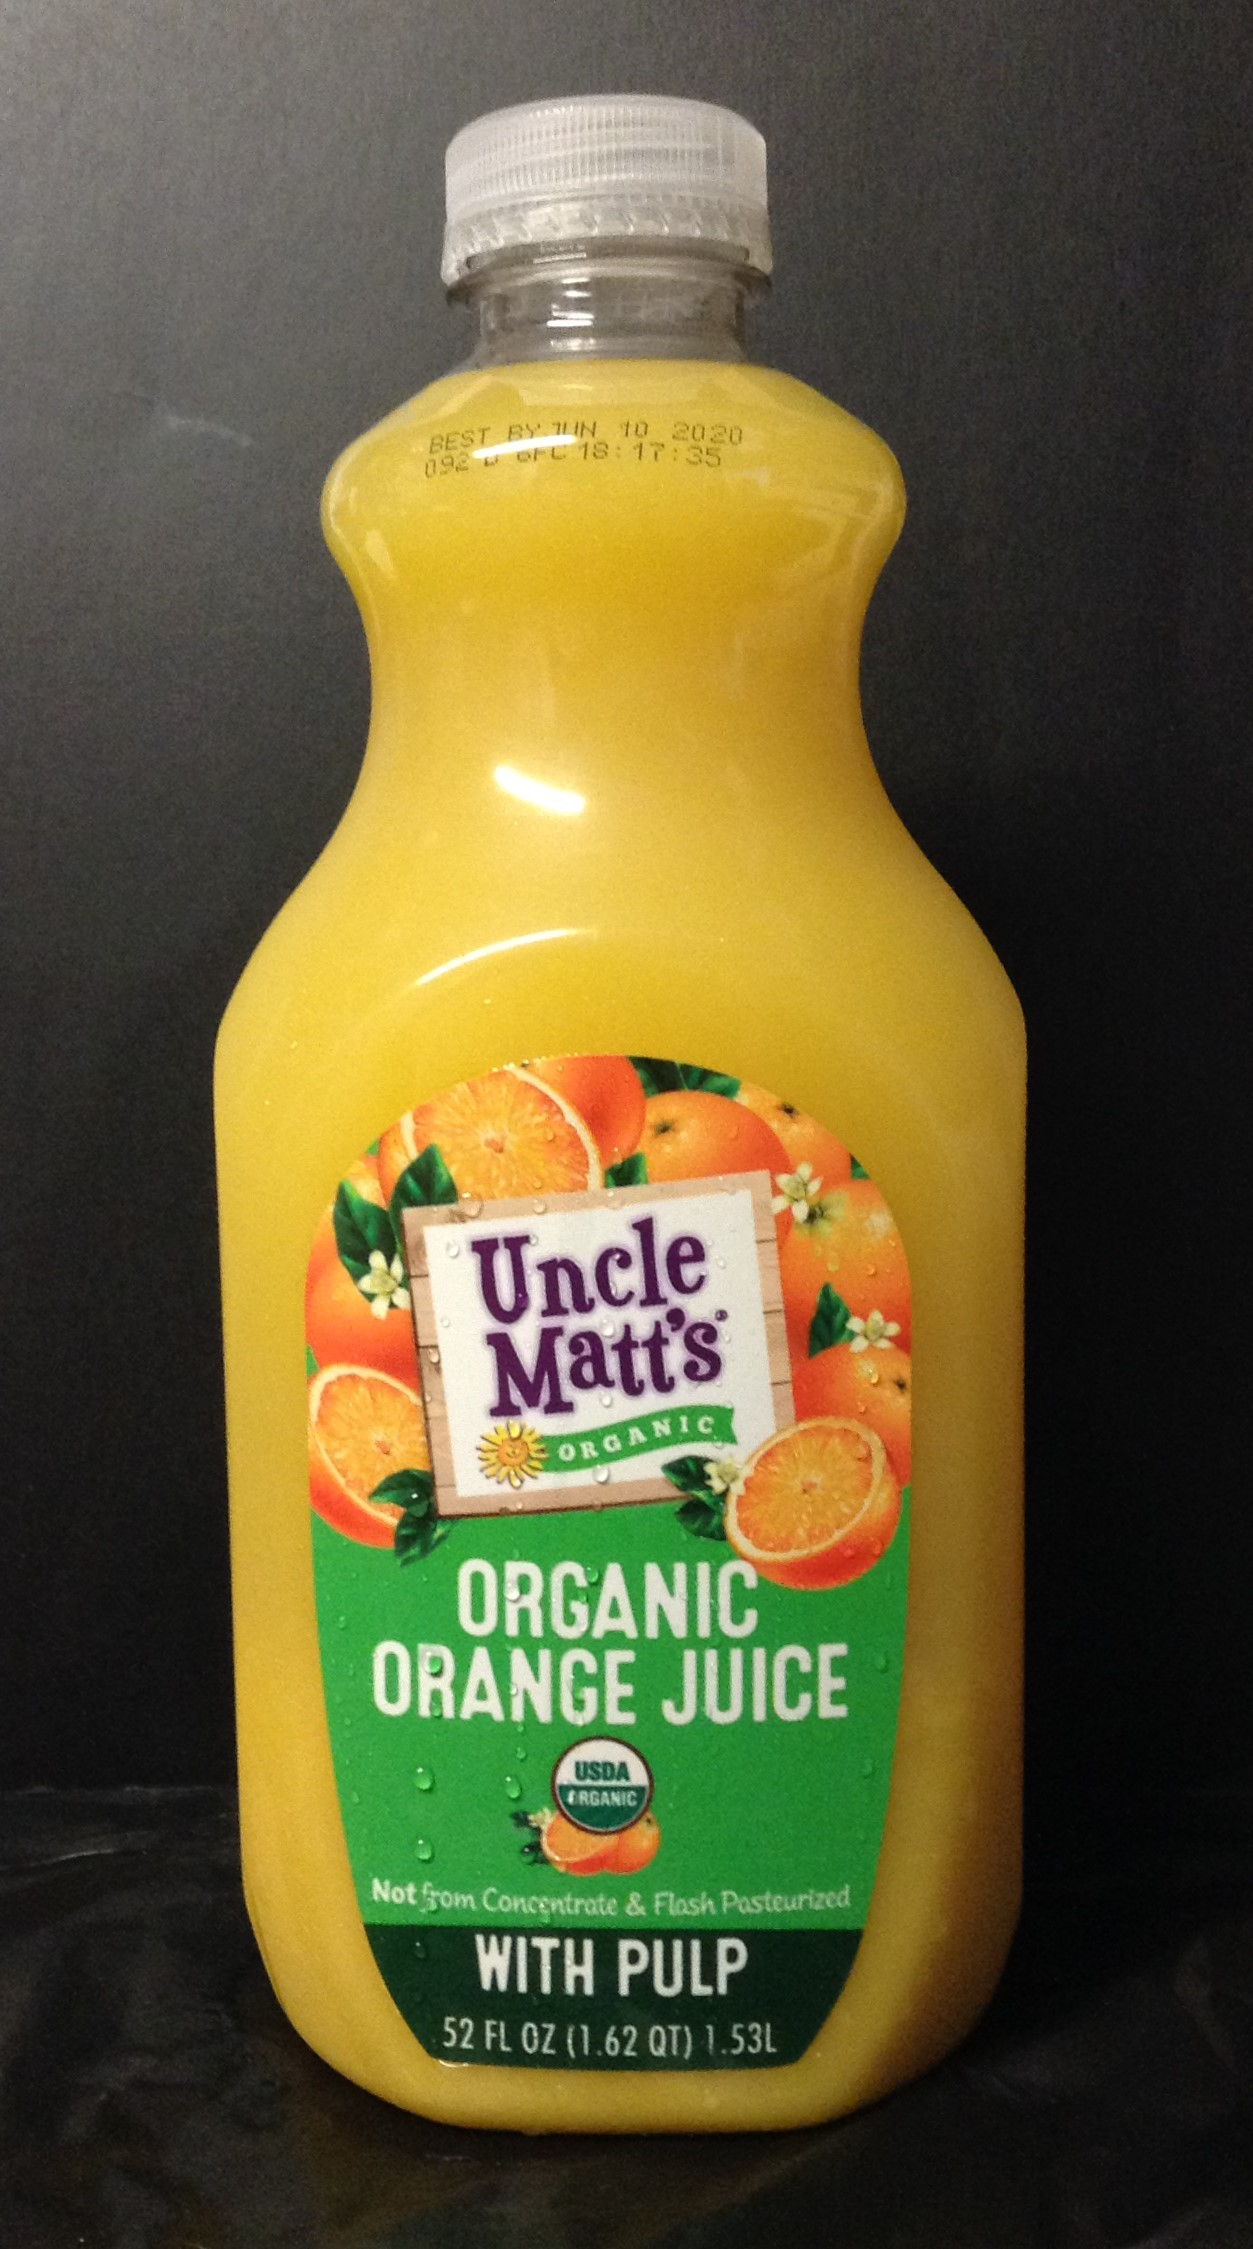 Uncle Matt's Organic Orange Juice - with pulp